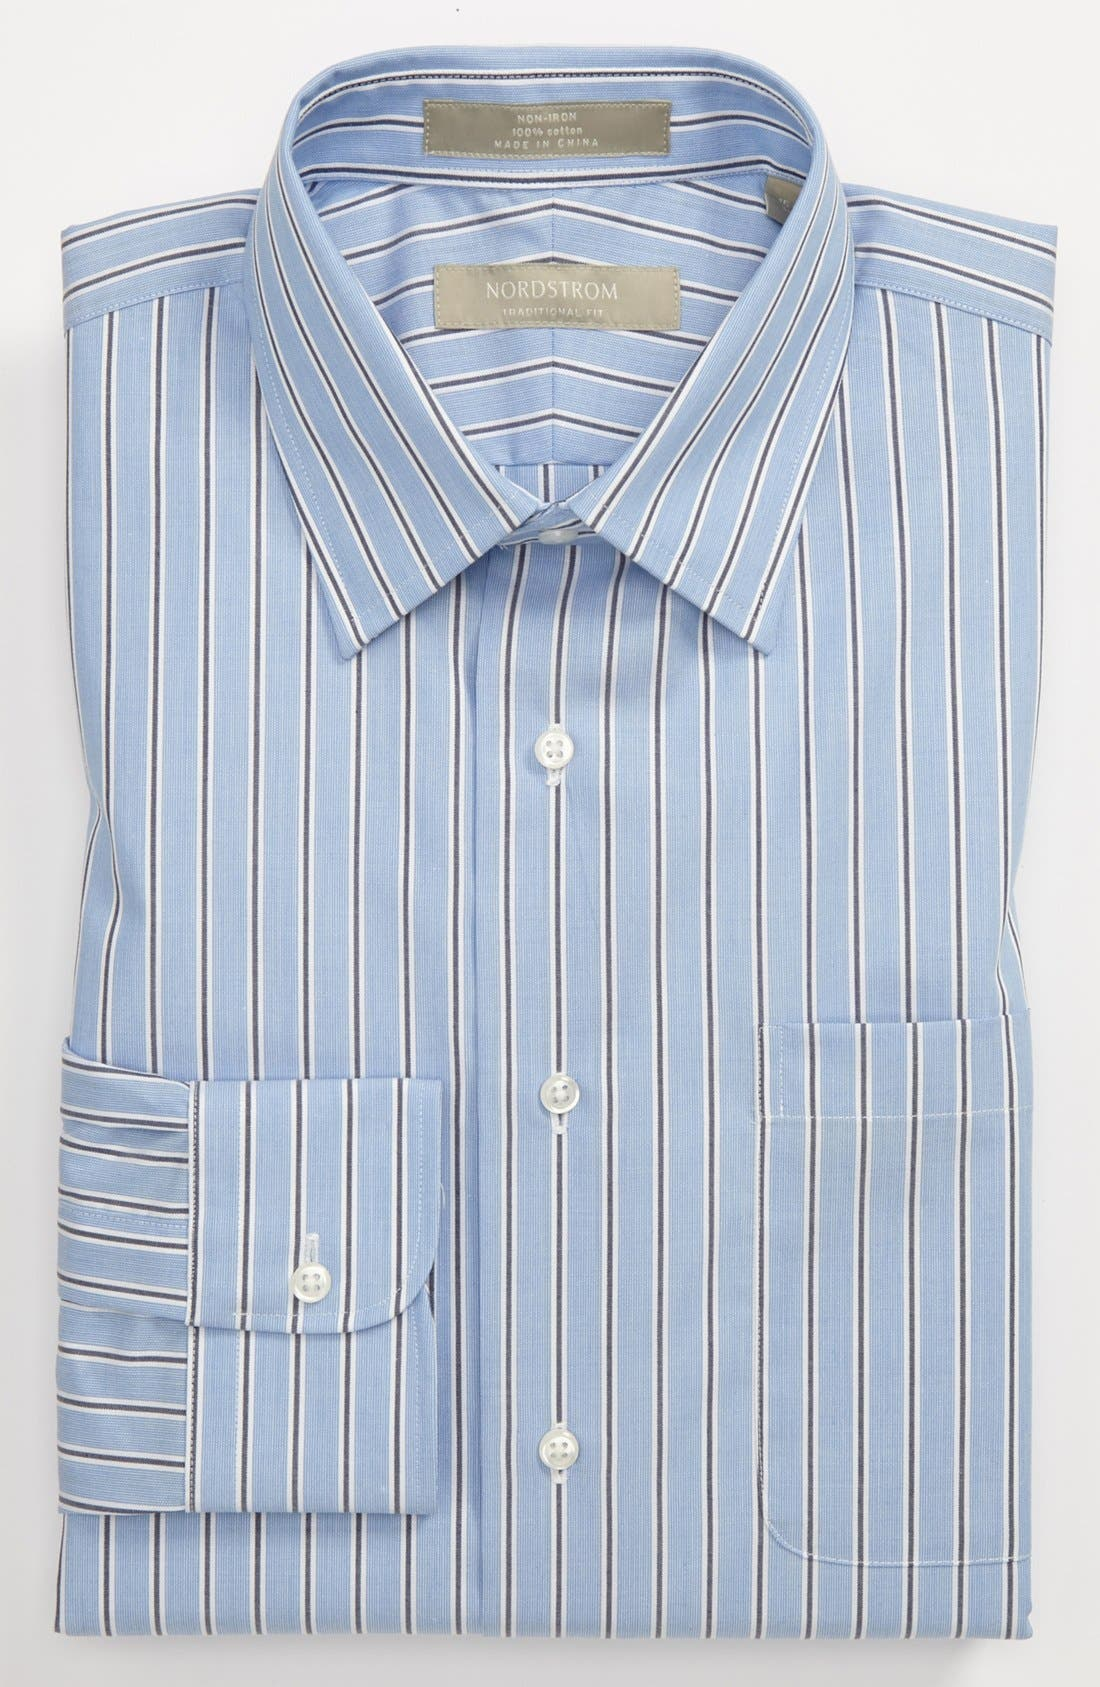 Alternate Image 1 Selected - Nordstrom Traditional Fit Non-Iron Dress Shirt